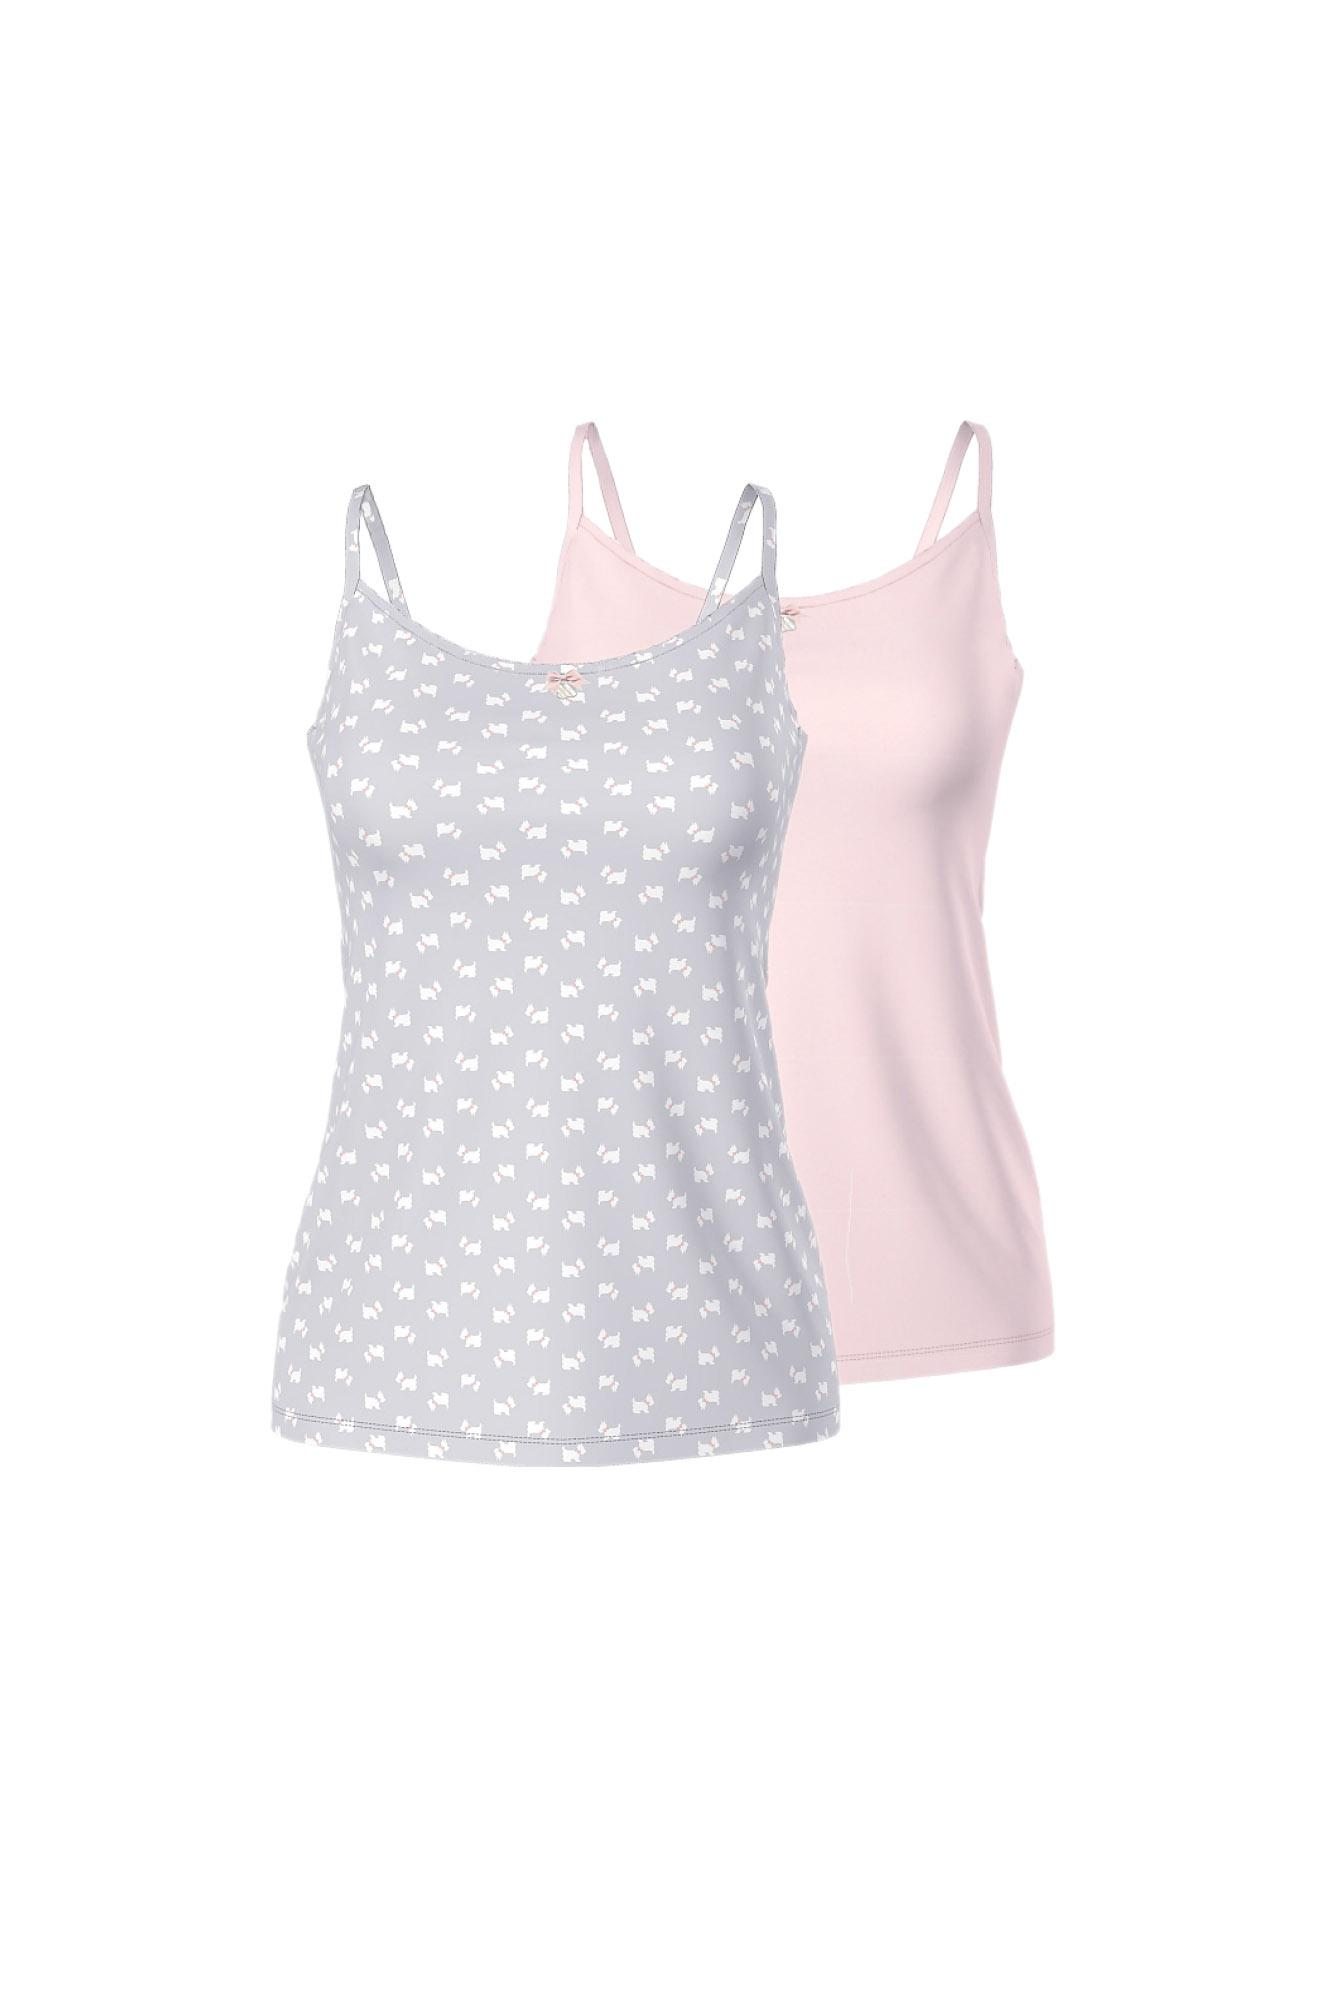 Women's 2 Pack Print Vests